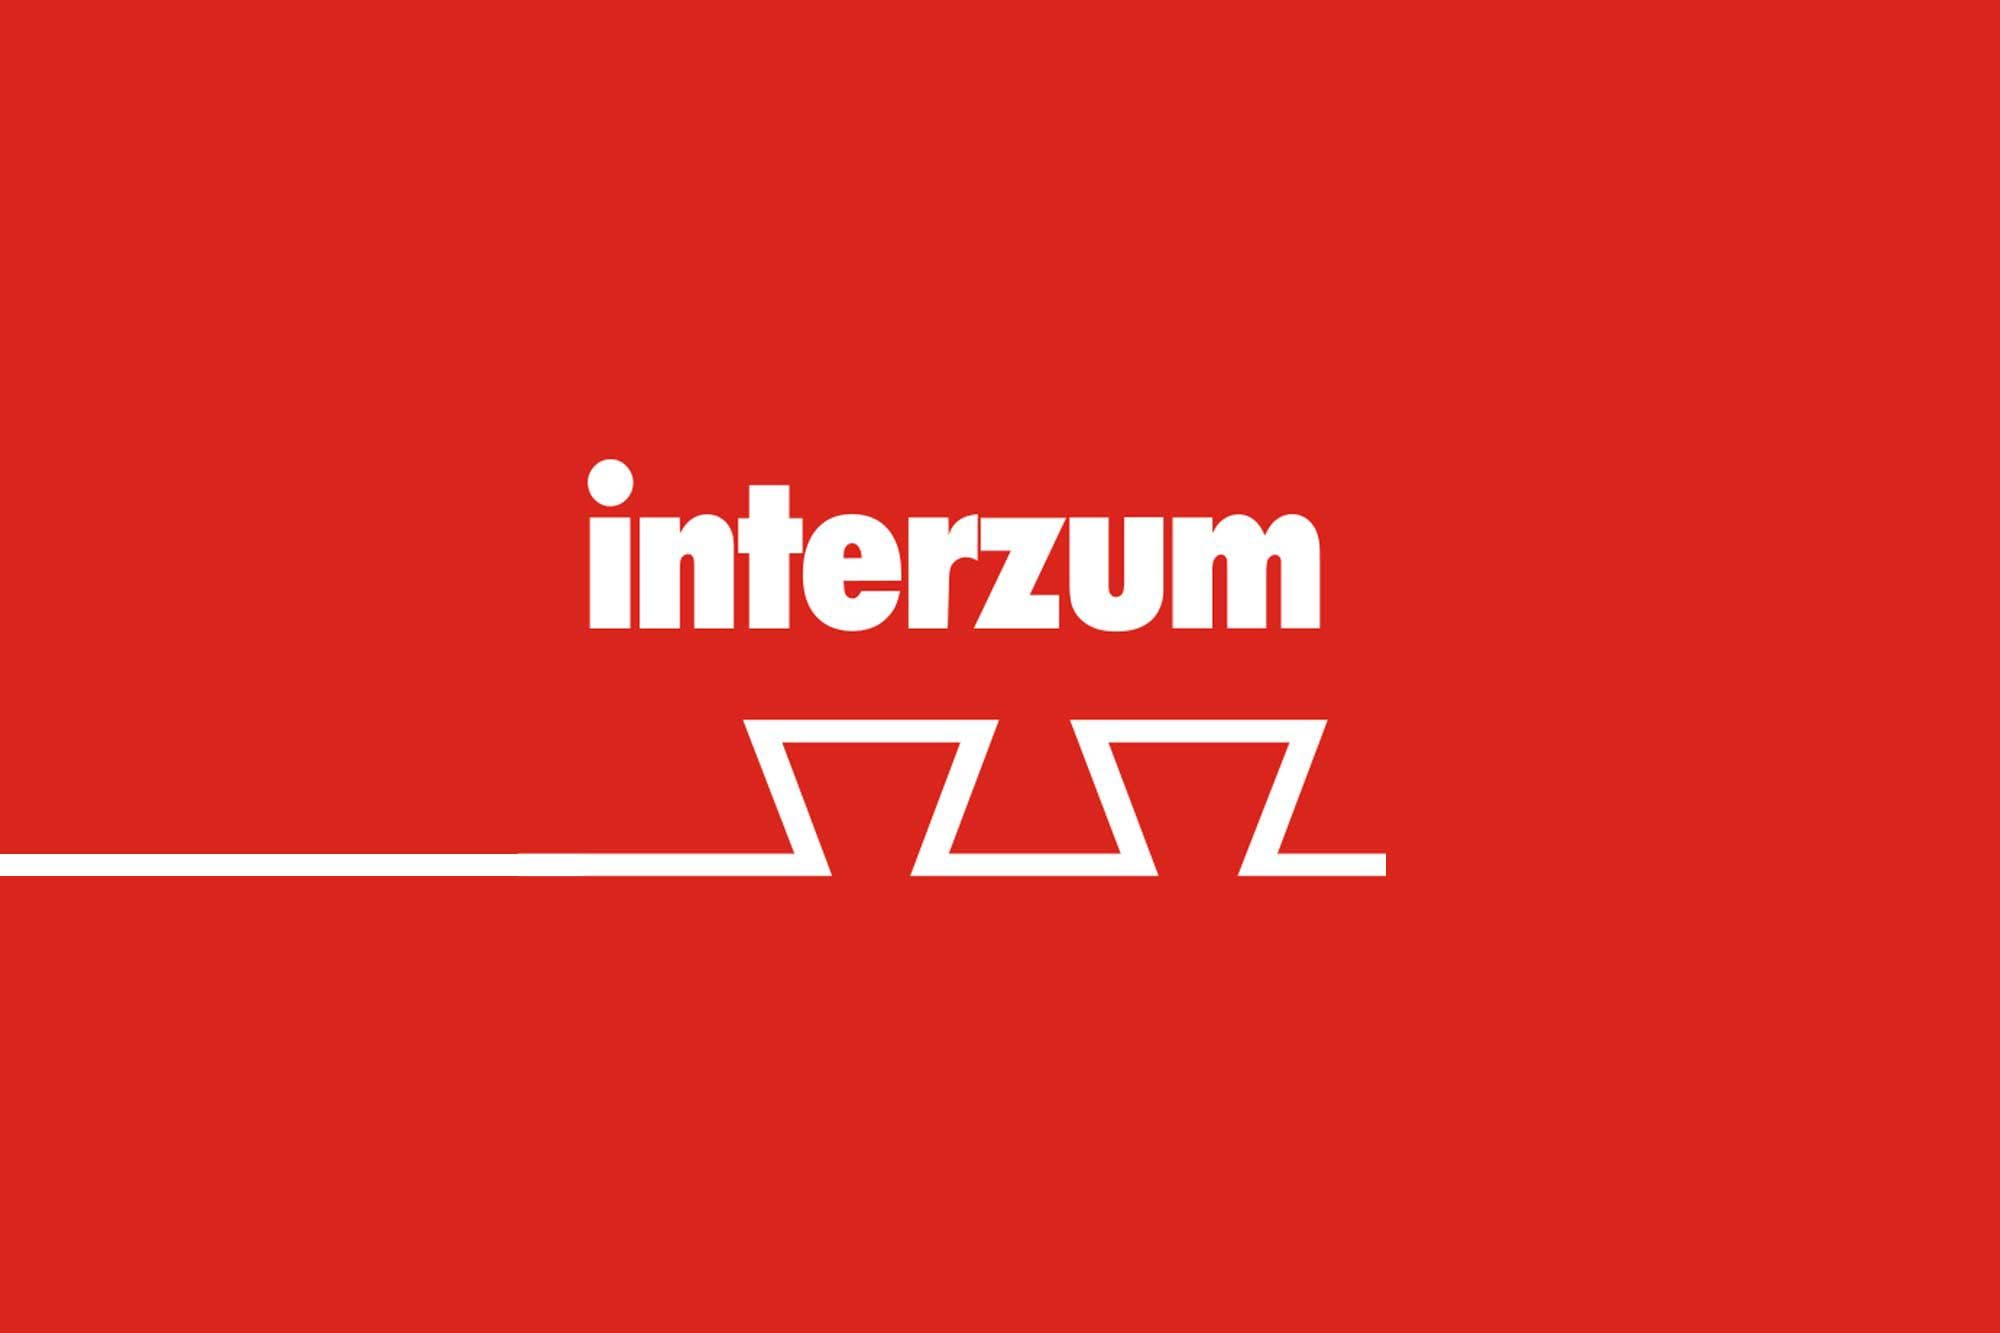 Interzum - Cologne - Germany